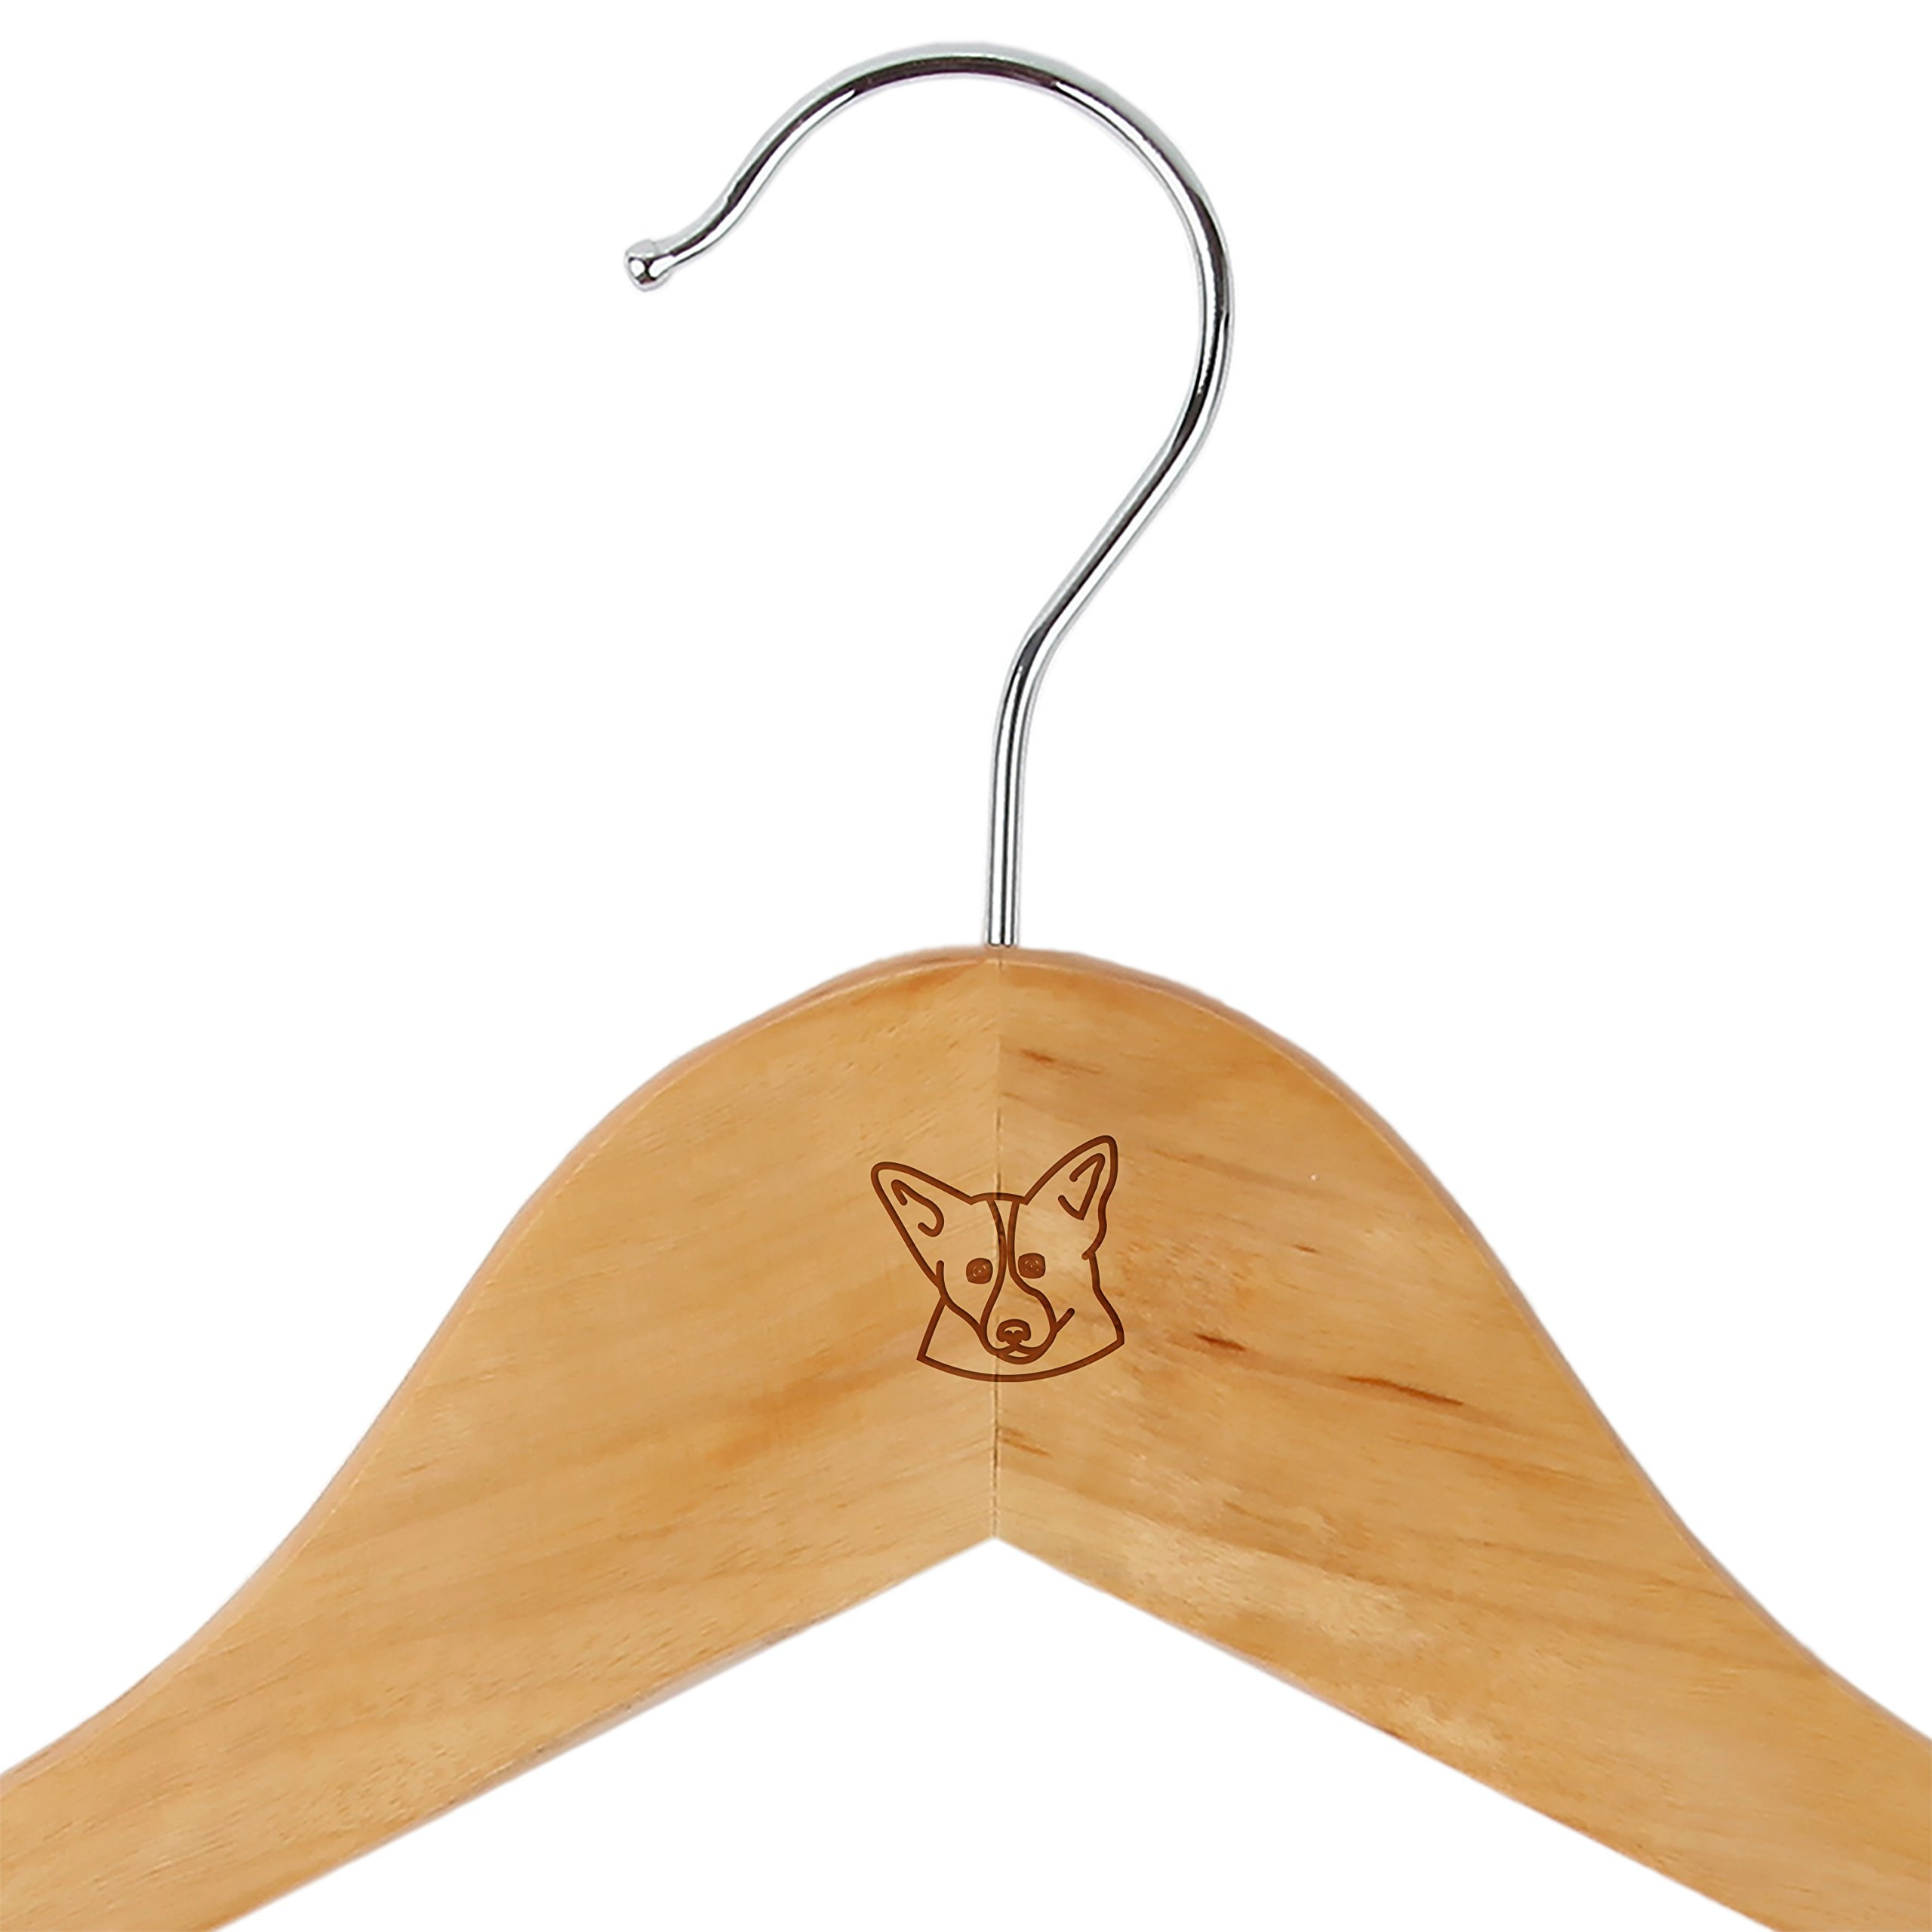 Corgi Maple Clothes Hangers - Wooden Suit Hanger - Laser Engraved Design - Wooden Hangers for Dresses, Wedding Gowns, Suits, and Other Special Garments by Modern Goods Co